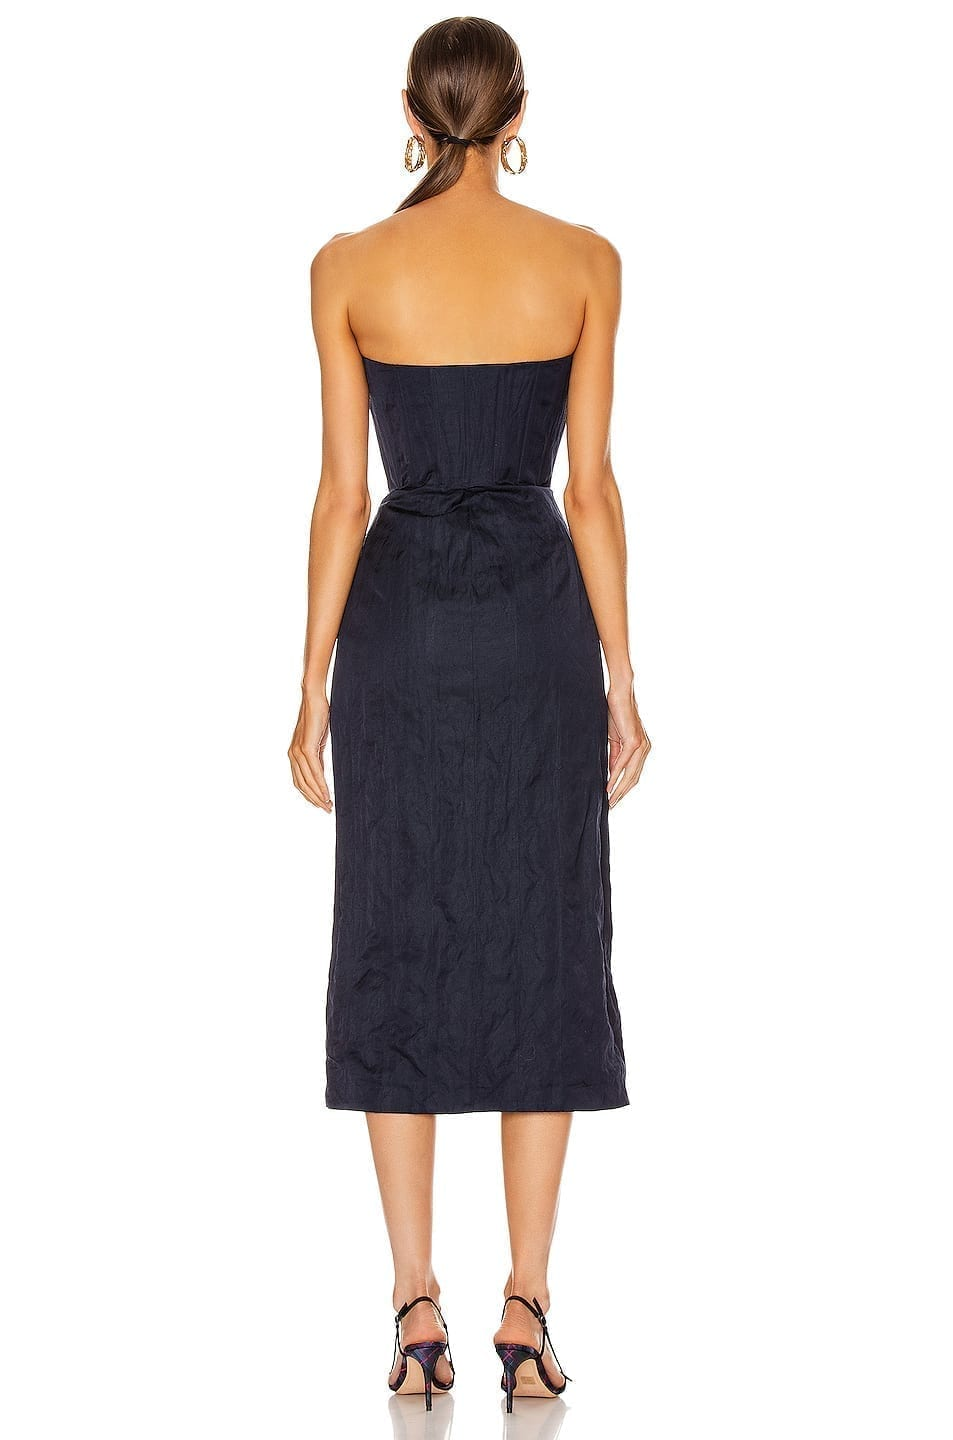 BROCK COLLECTION Strapless Priscilla Dress